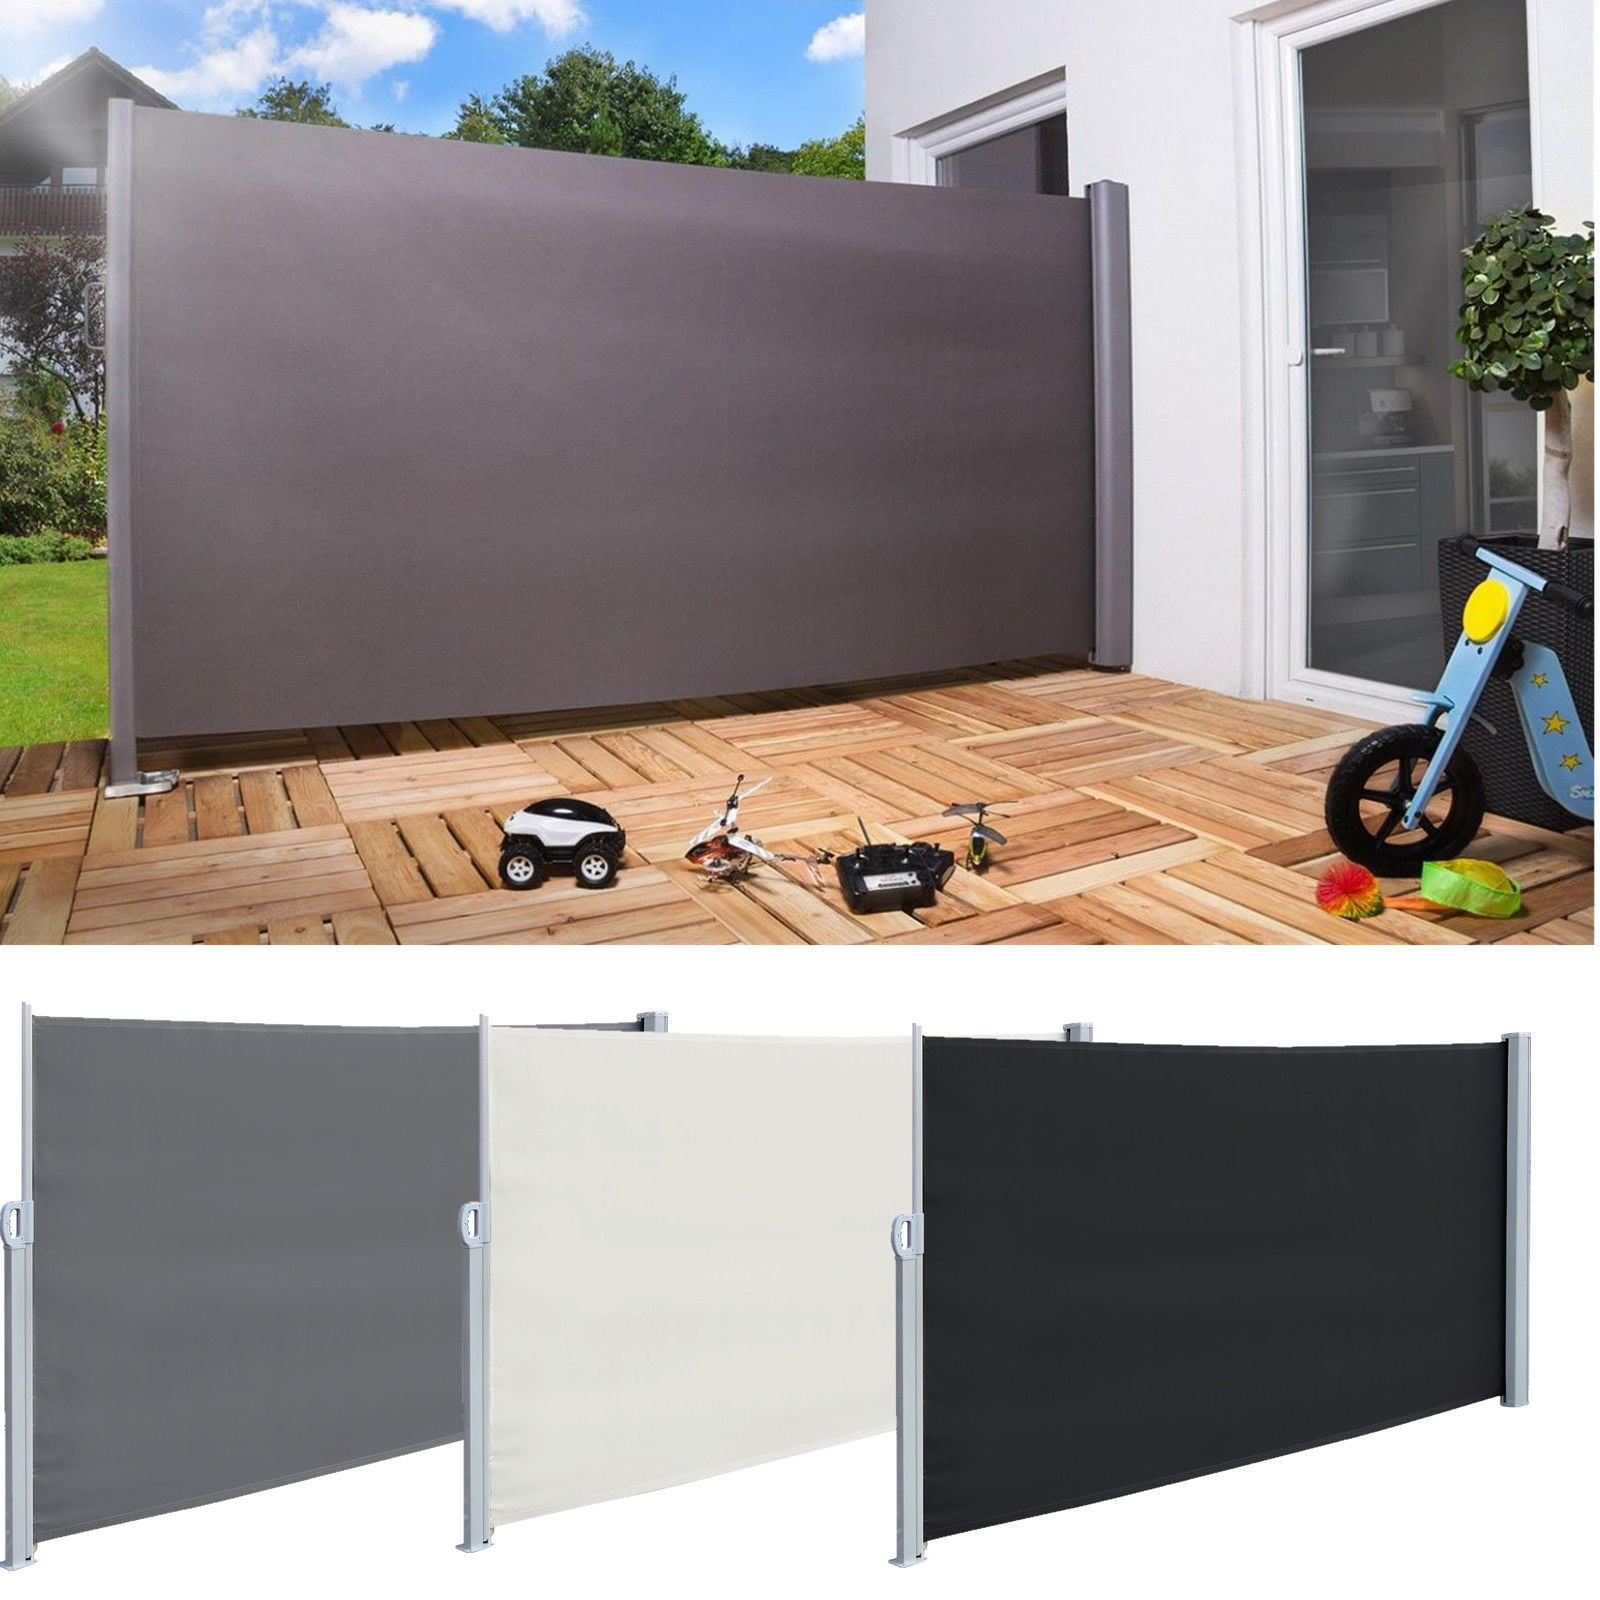 5.9/'x9.8/' Sunshade Retractable Side Awning Outdoor Privacy Divider Wind Screen